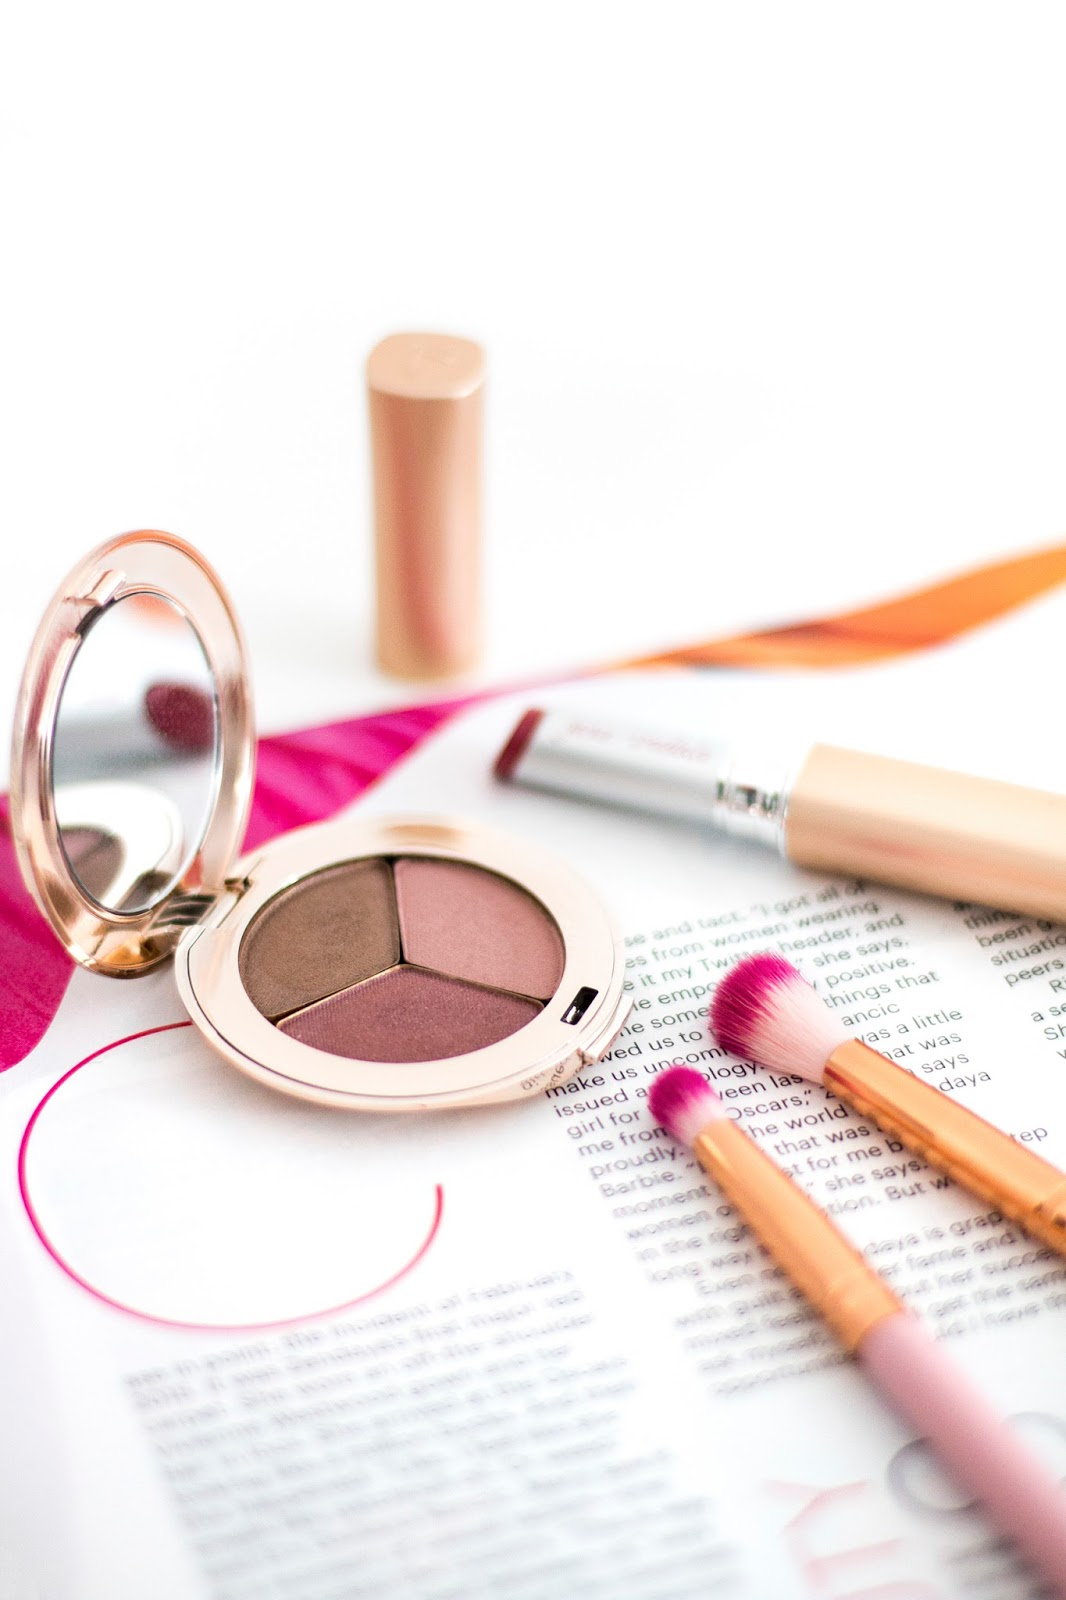 Two makeup products from Jane Iredale